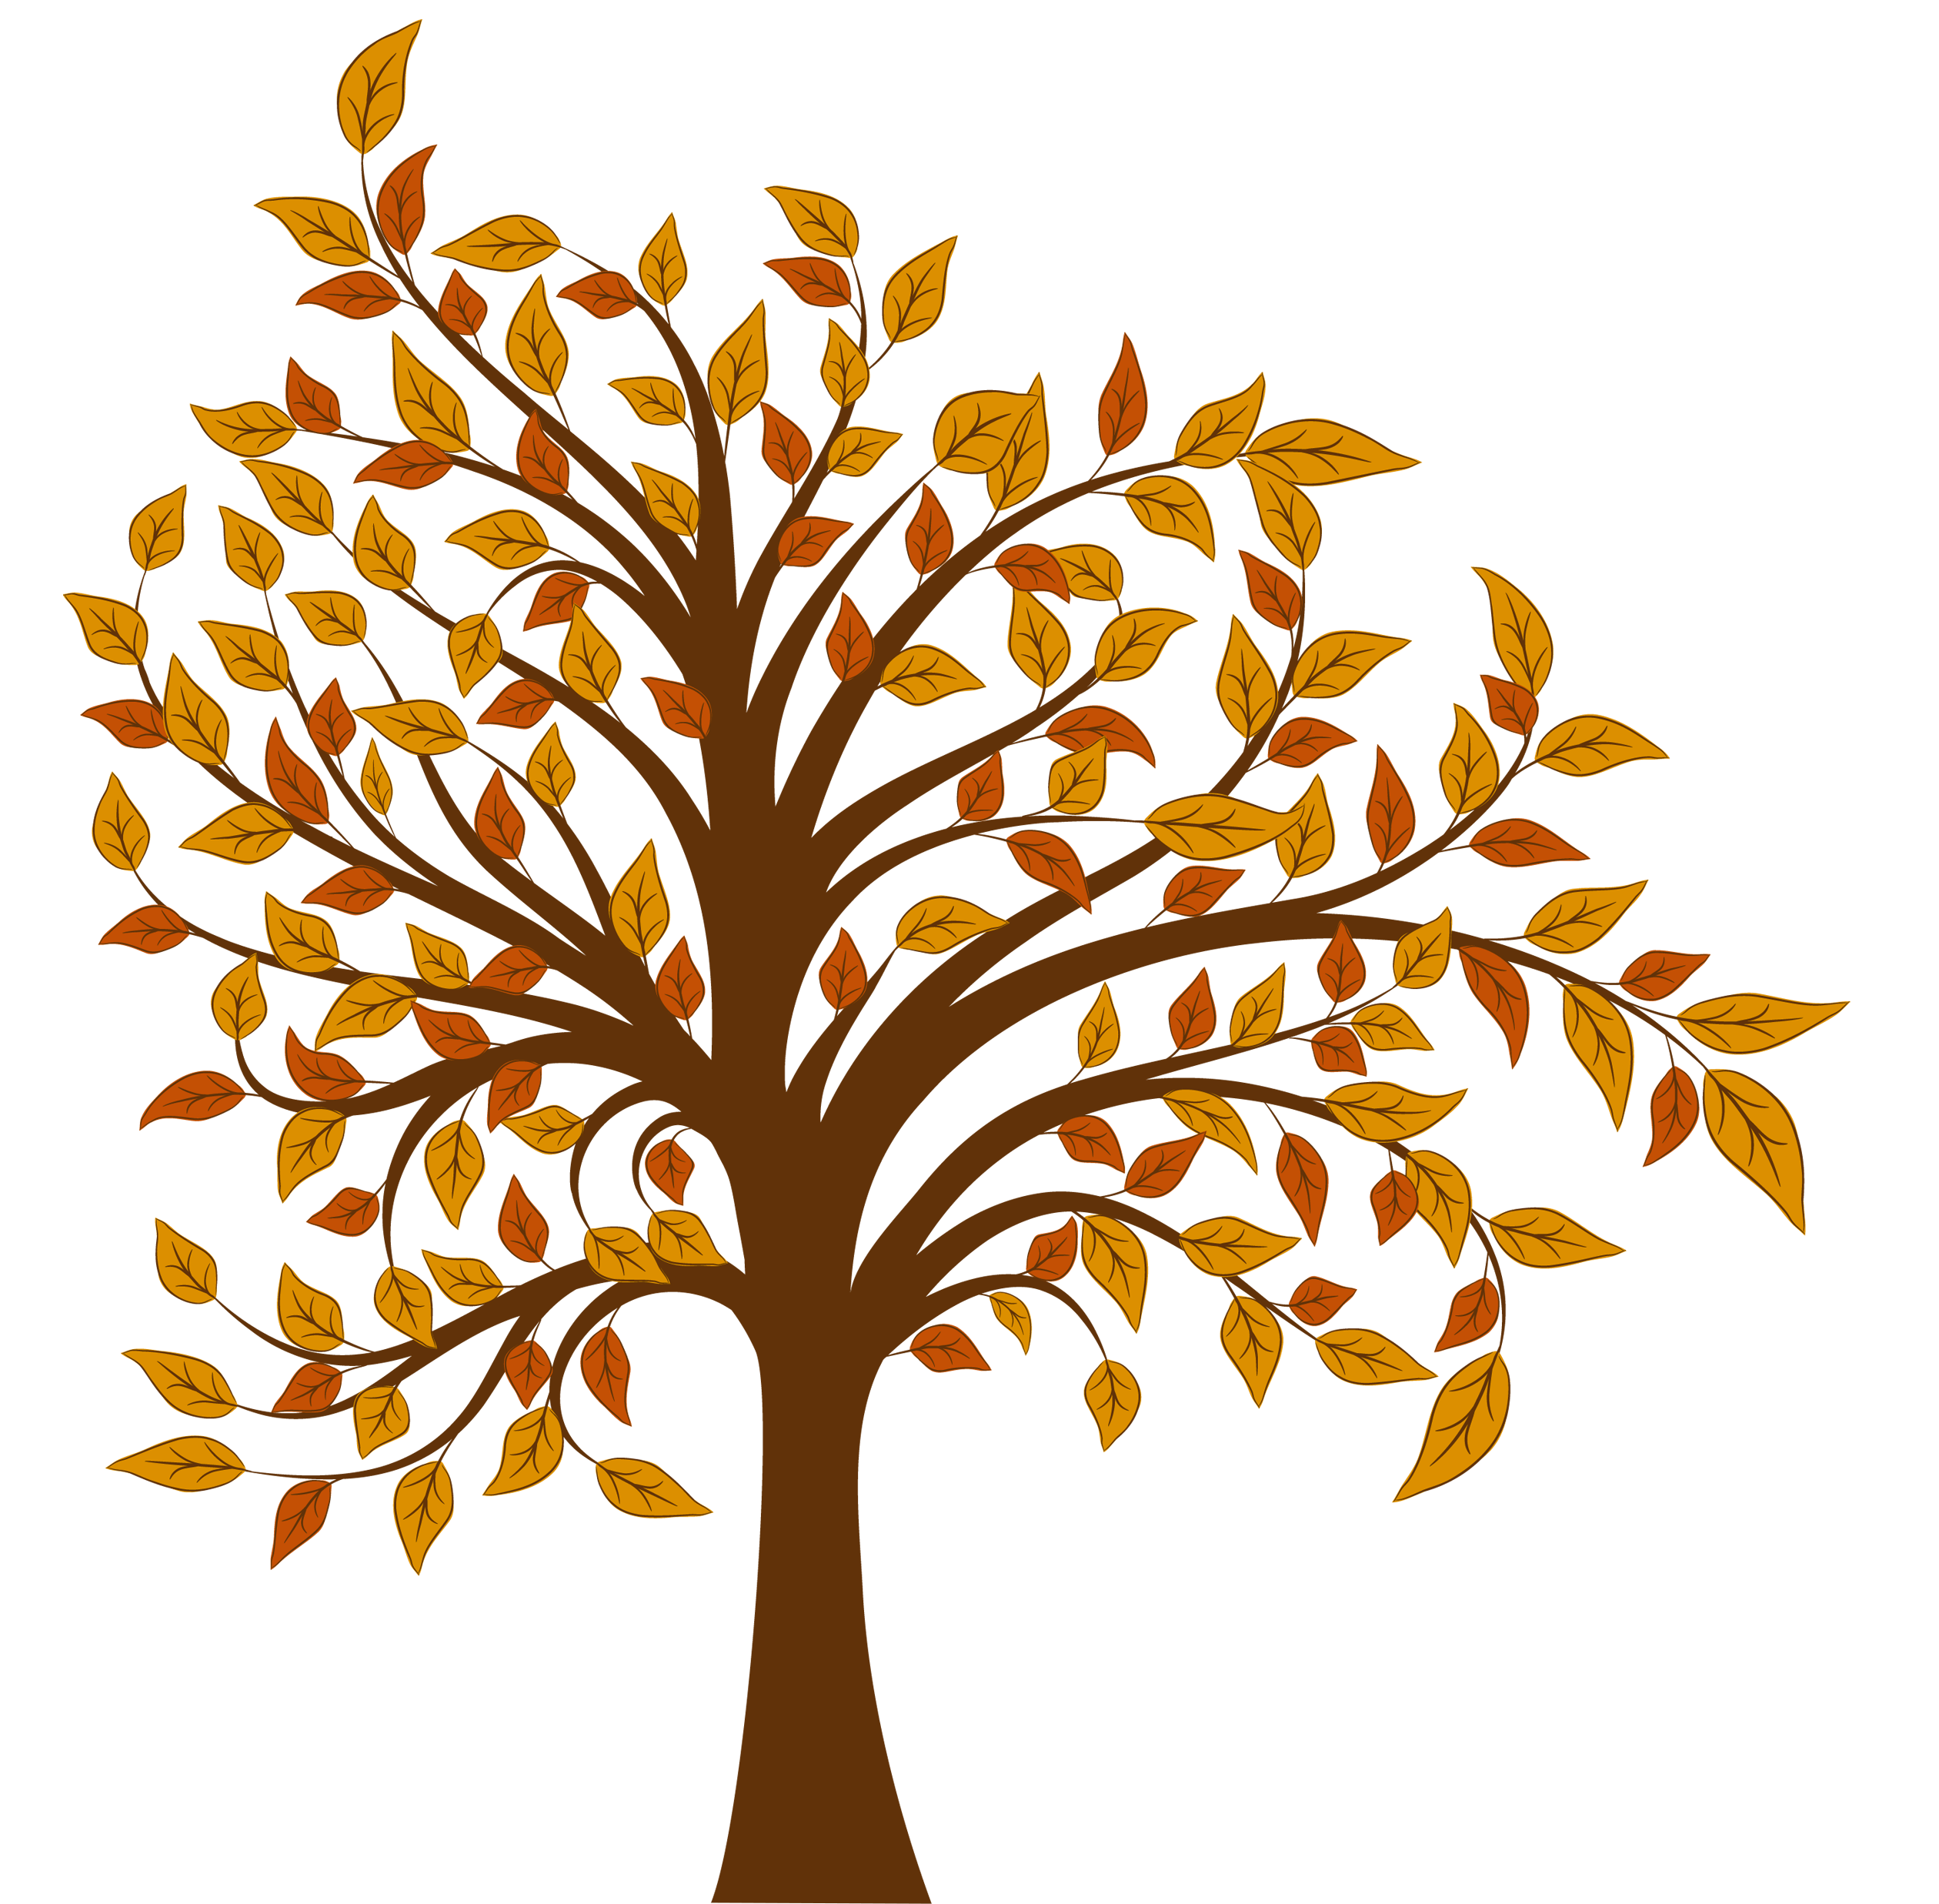 Autumn Tree Clipart Png.